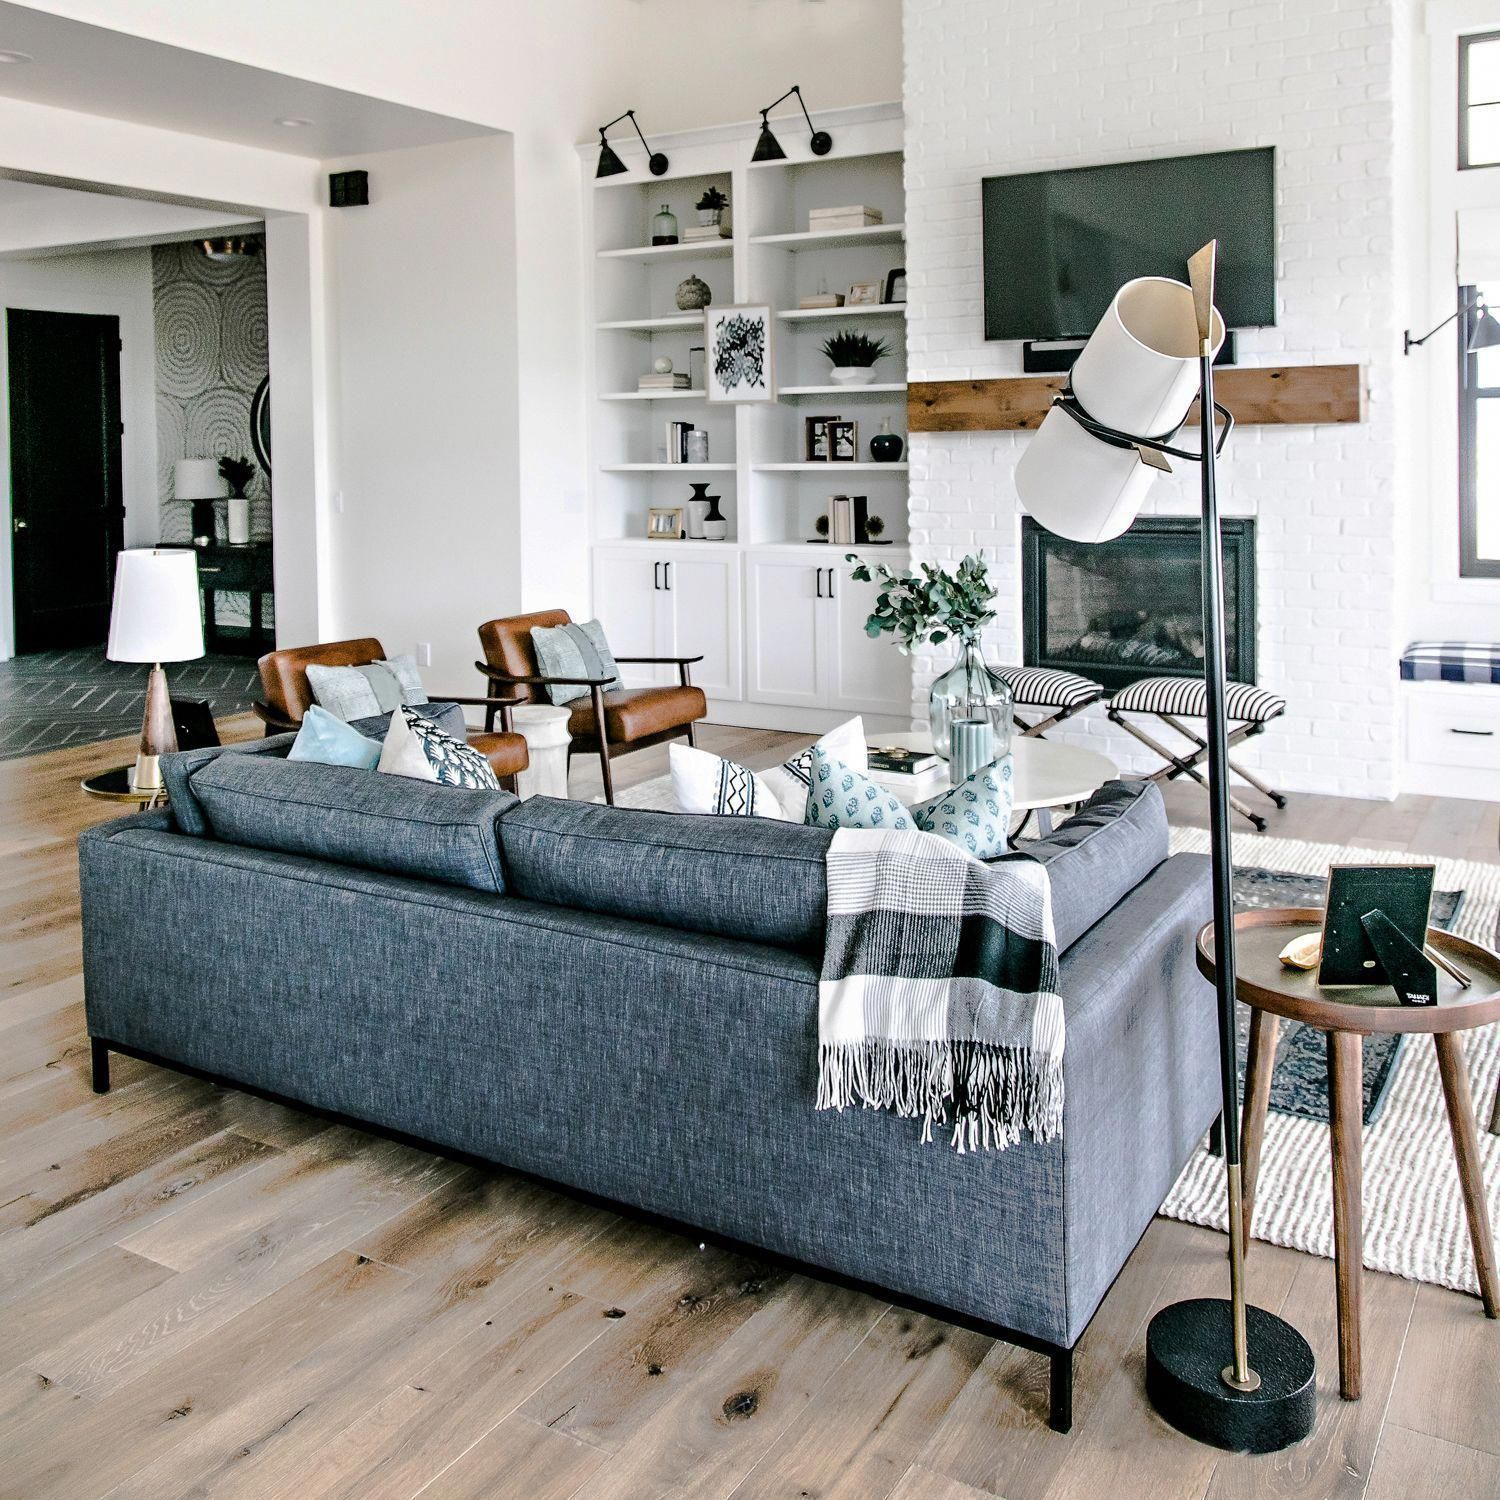 5 Living Rooms That Demonstrate Stylish Modern Design Trends: Mid-Century Leather Show Wood Chair In 2020 (With Images